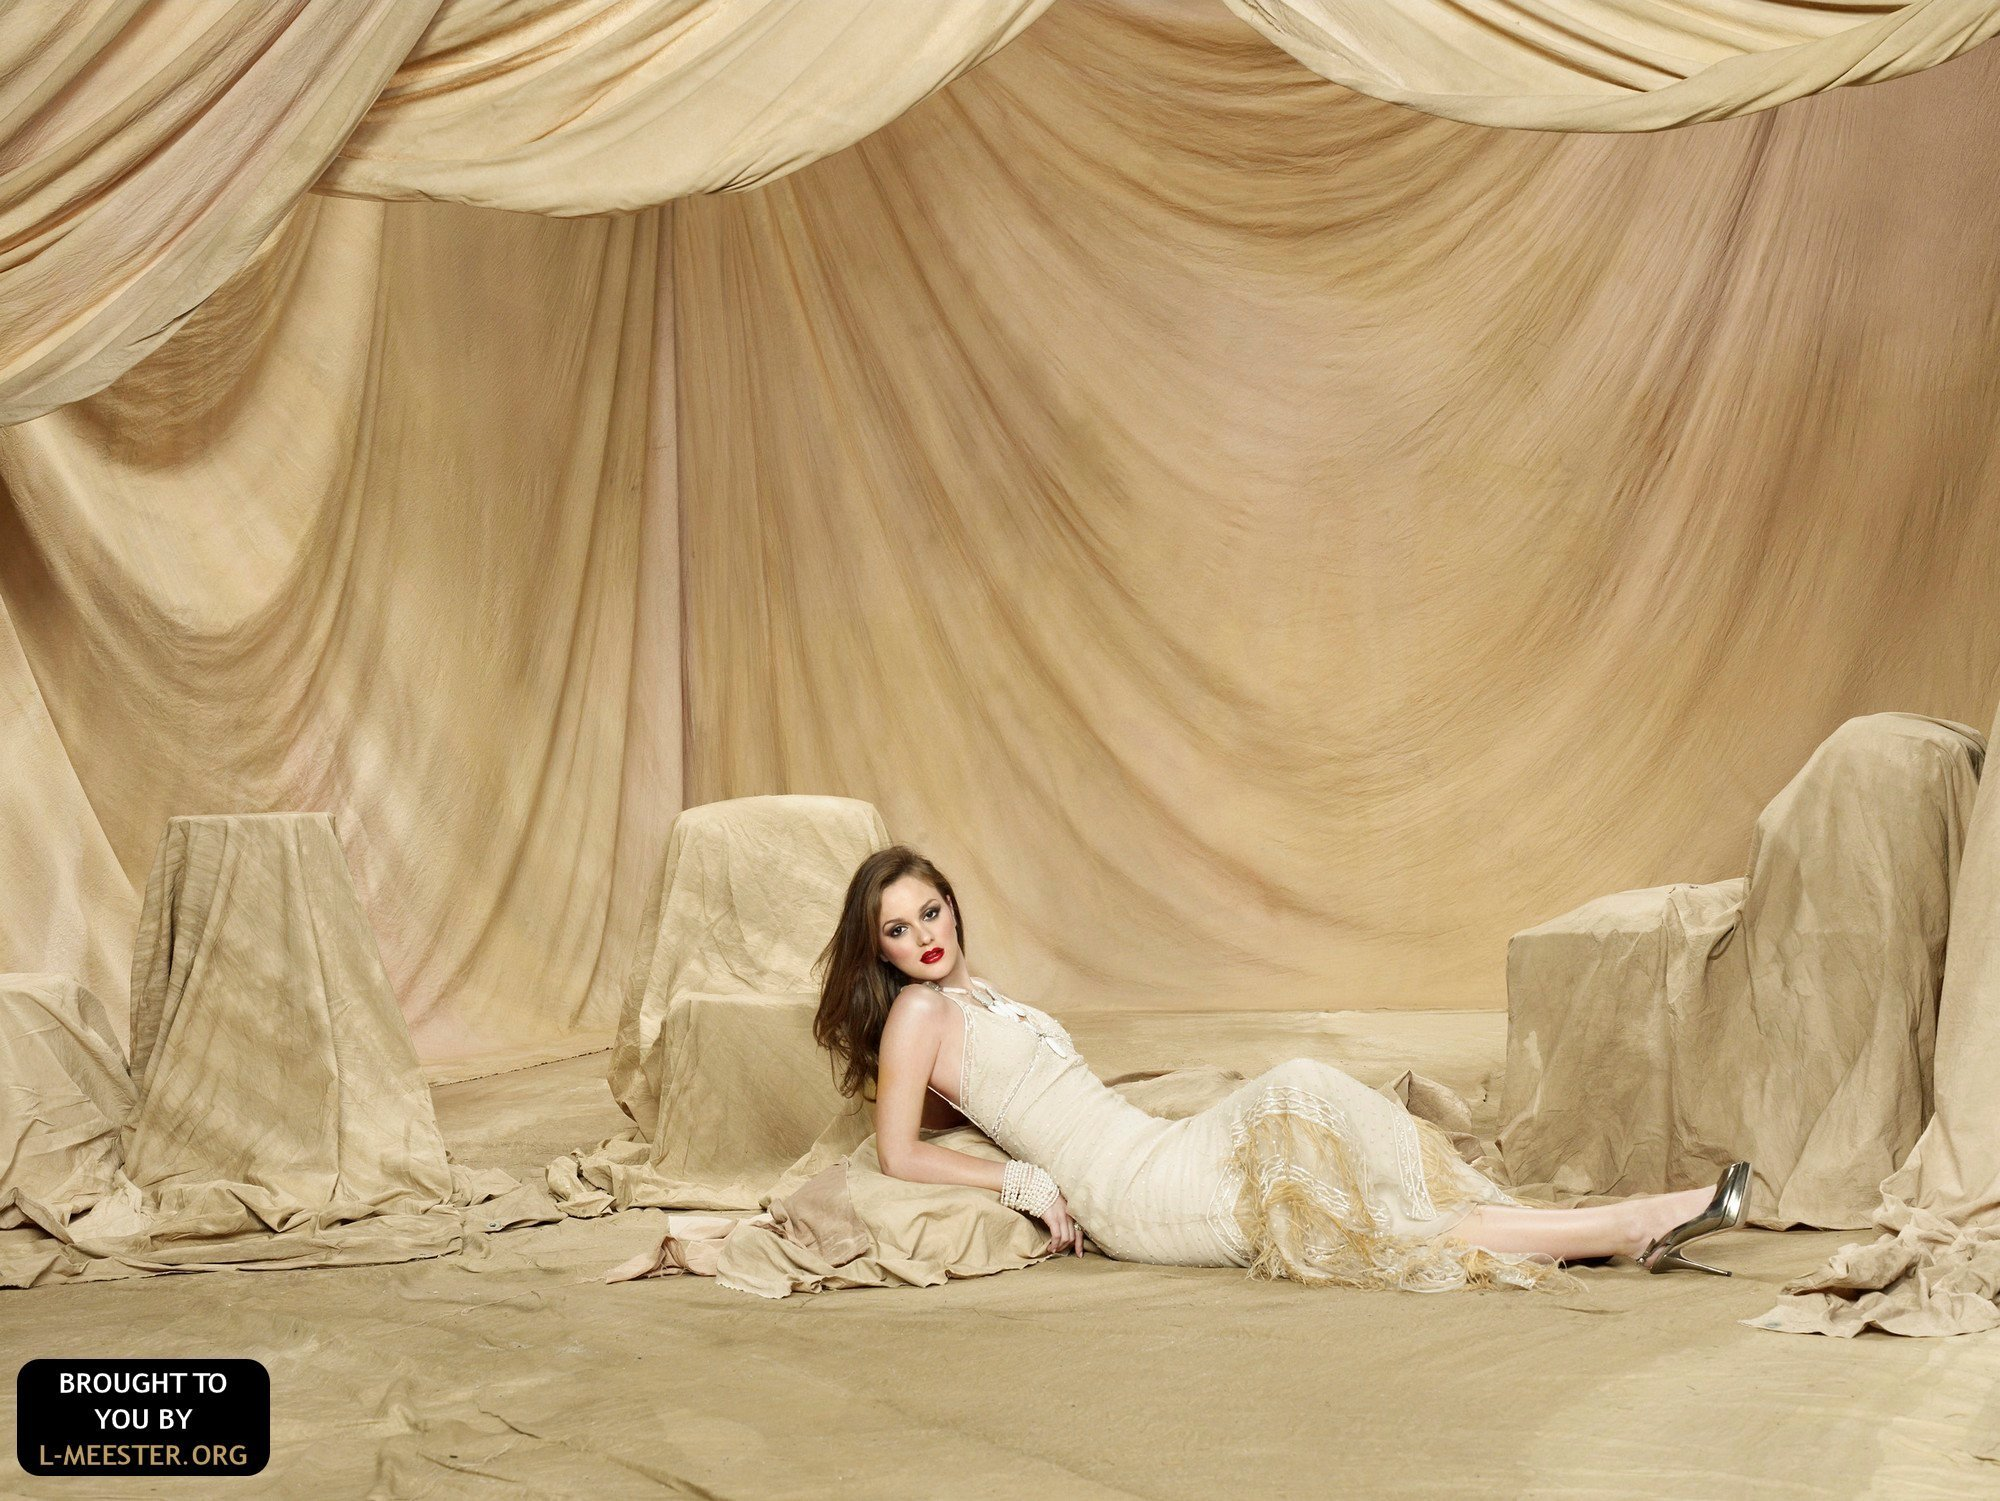 Leighton Meester promotional